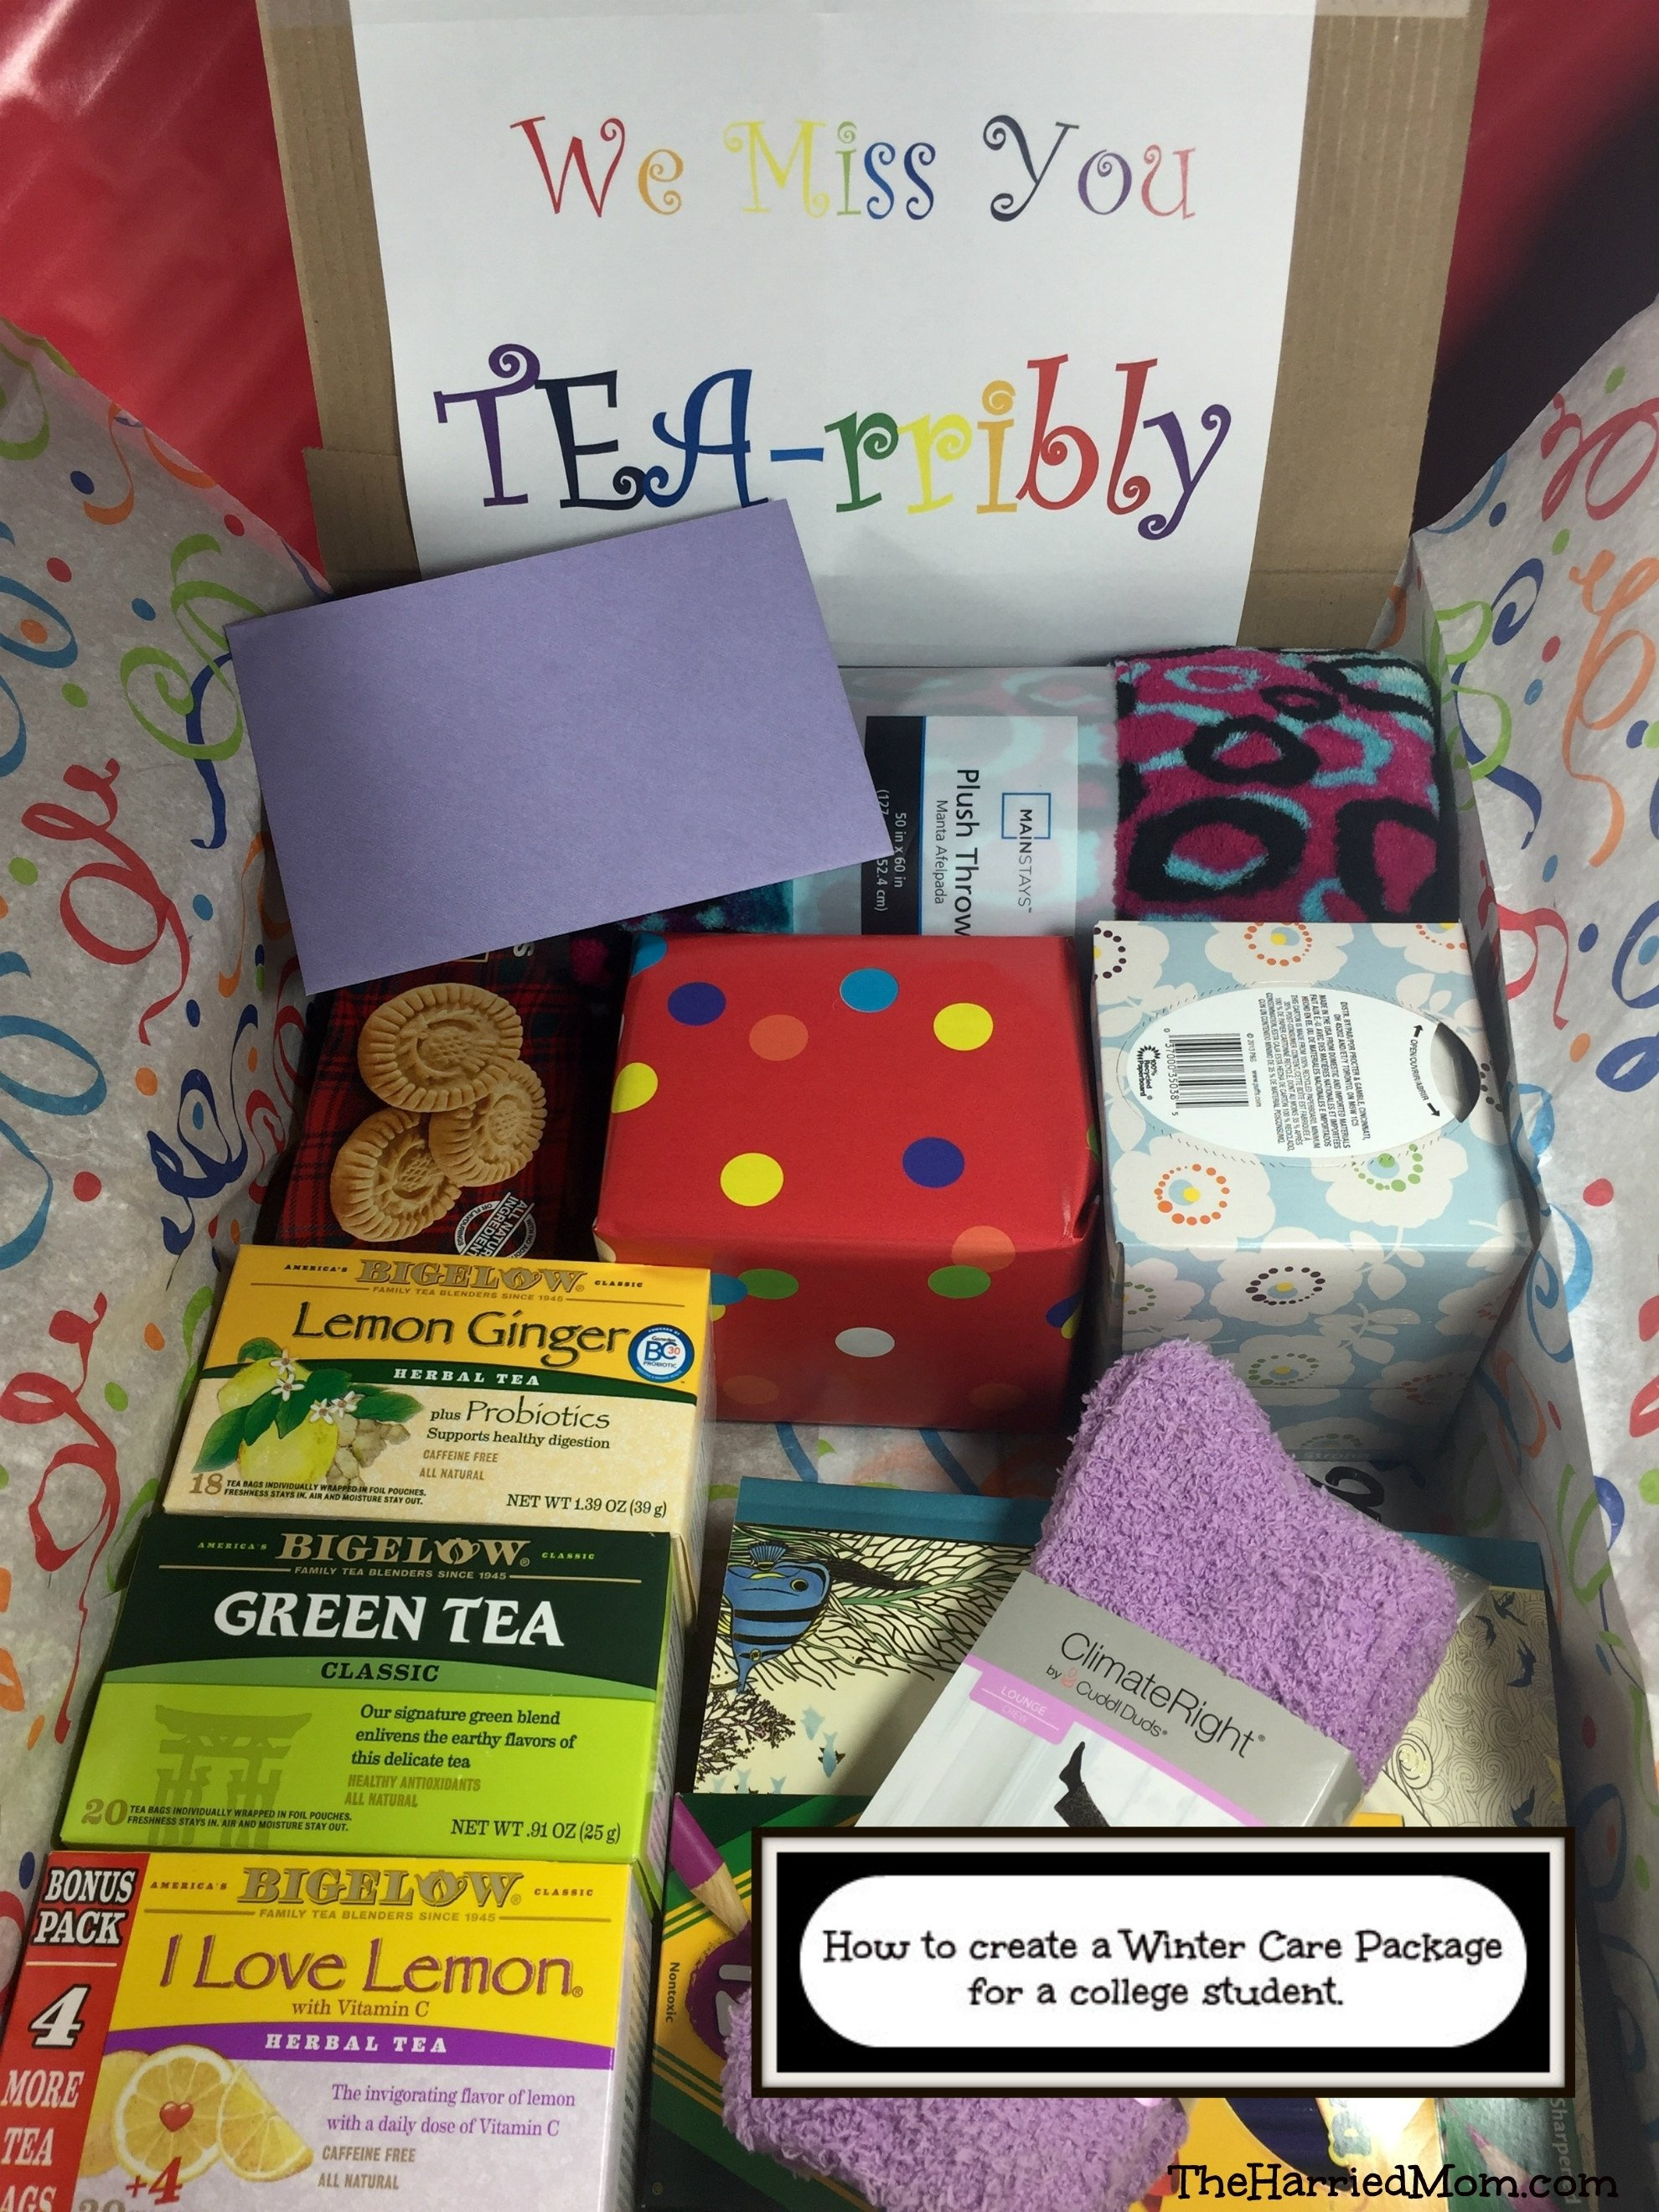 10 Wonderful Ideas For A Care Package how to create a winter care package for a college student 1 2021